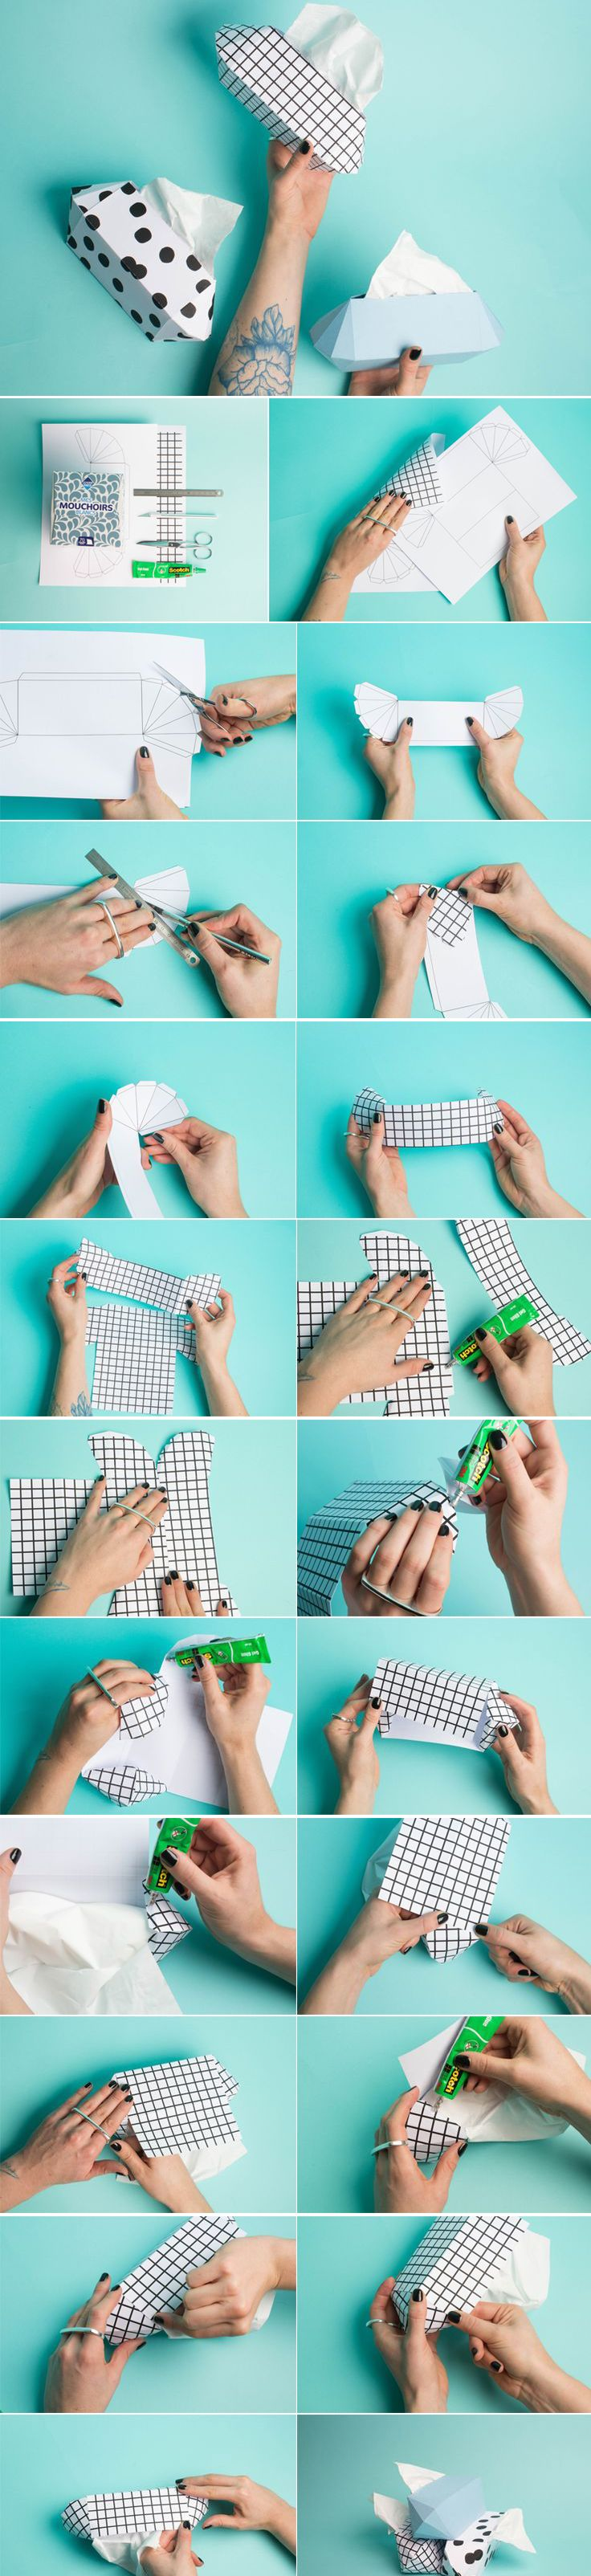 DIY Tissue Holder Tutorial with FREE Printable Template